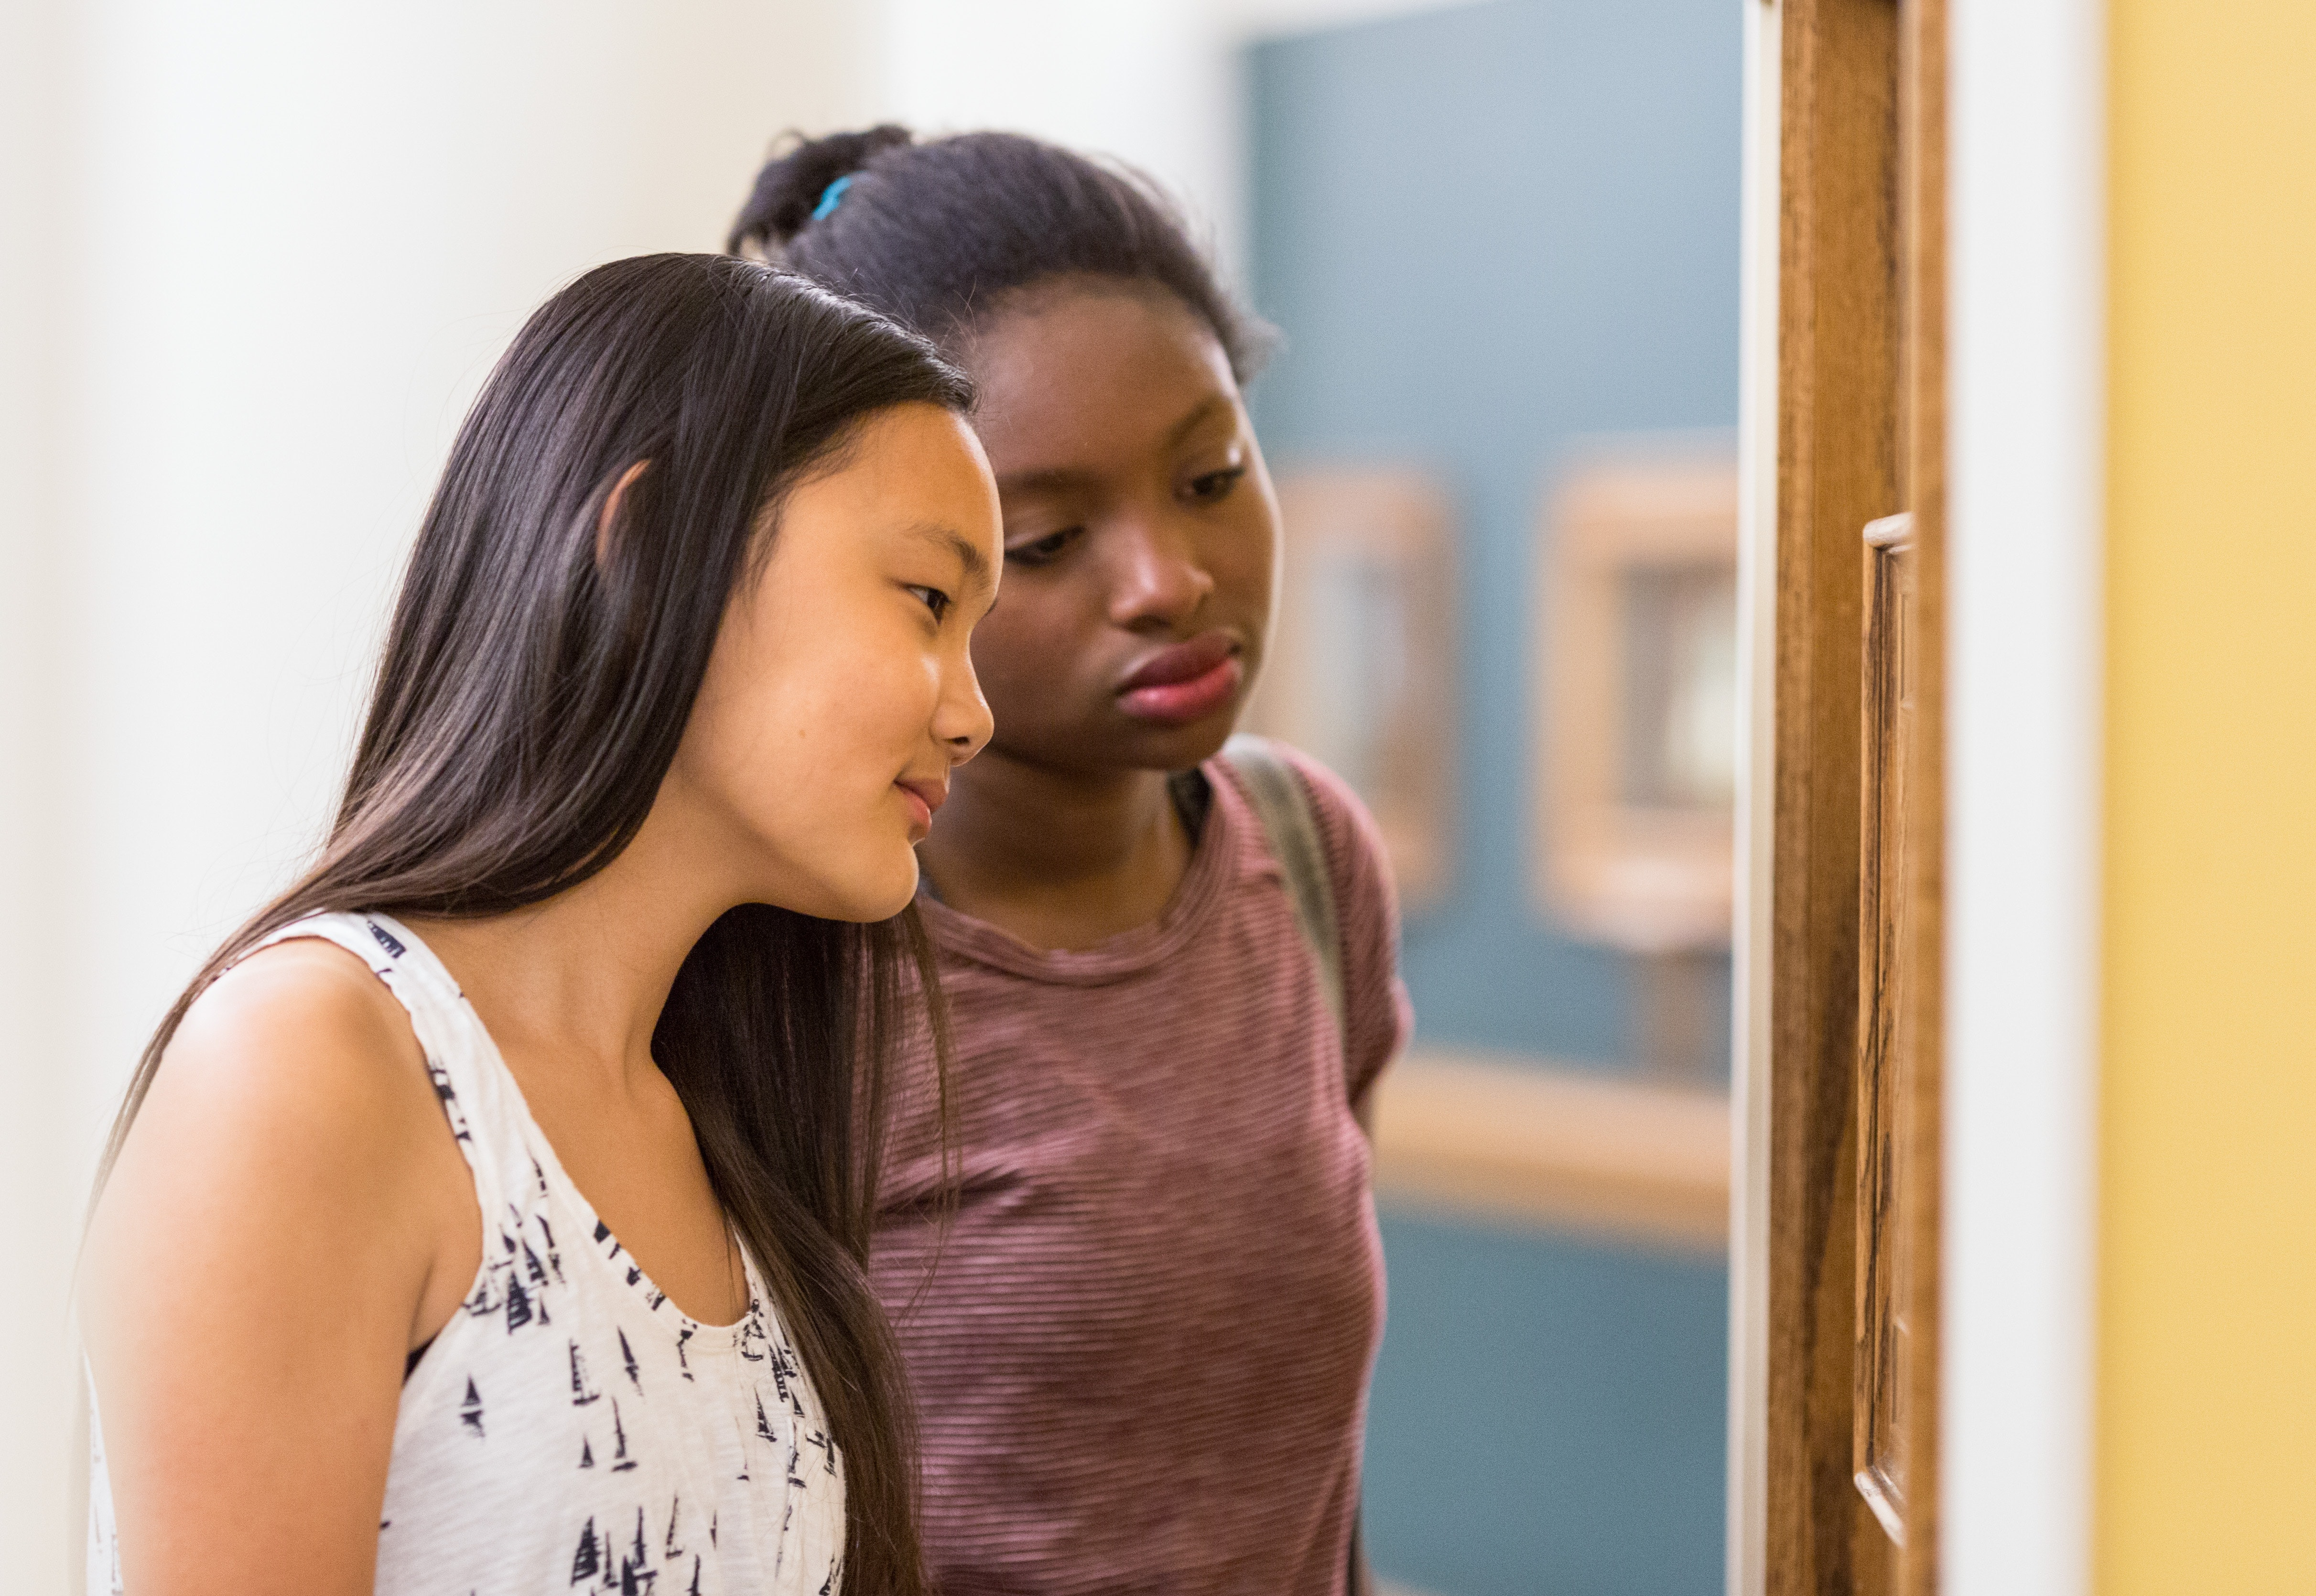 Two teen visitors look into a Miniature Room